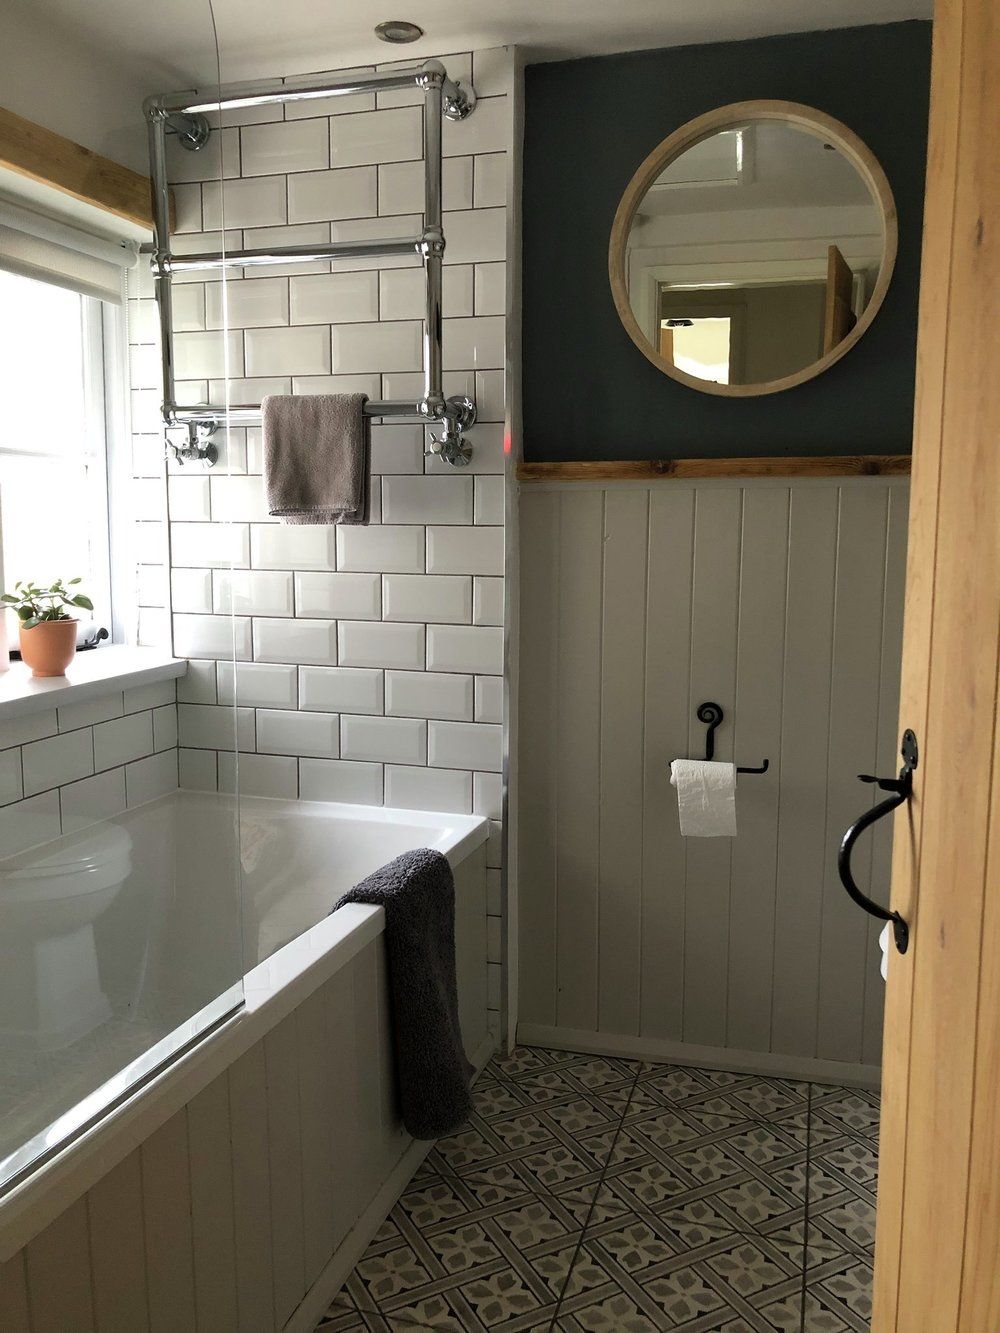 The blissful bathroom with patterned tile floor and a rather nice statement mirror